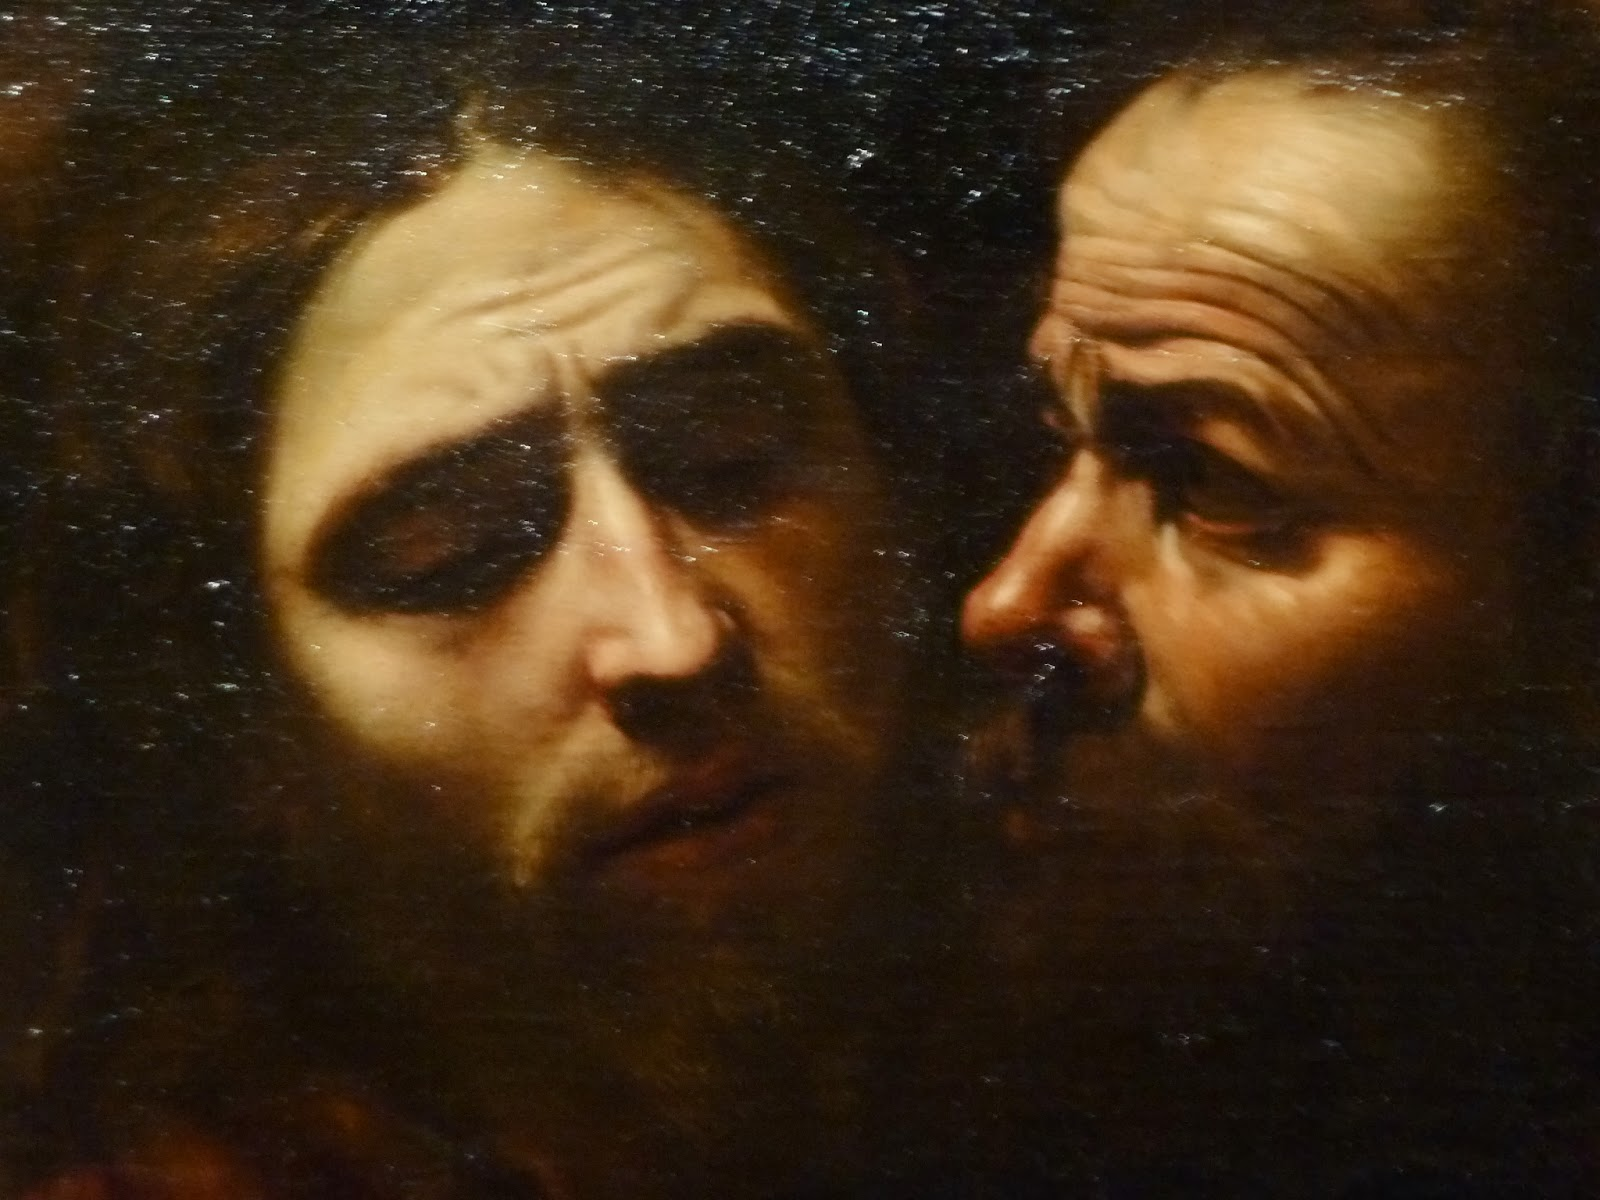 the taking of christ caravaggio The taking of christ, 1602 is an oil on canvas, 1335 x 1695 cm focal area: when i first look at this painting my eye is drawn to the shining armor of the soldier which then immediately drifts along the soldiers armor clad arm to the faces of jesus and judas.